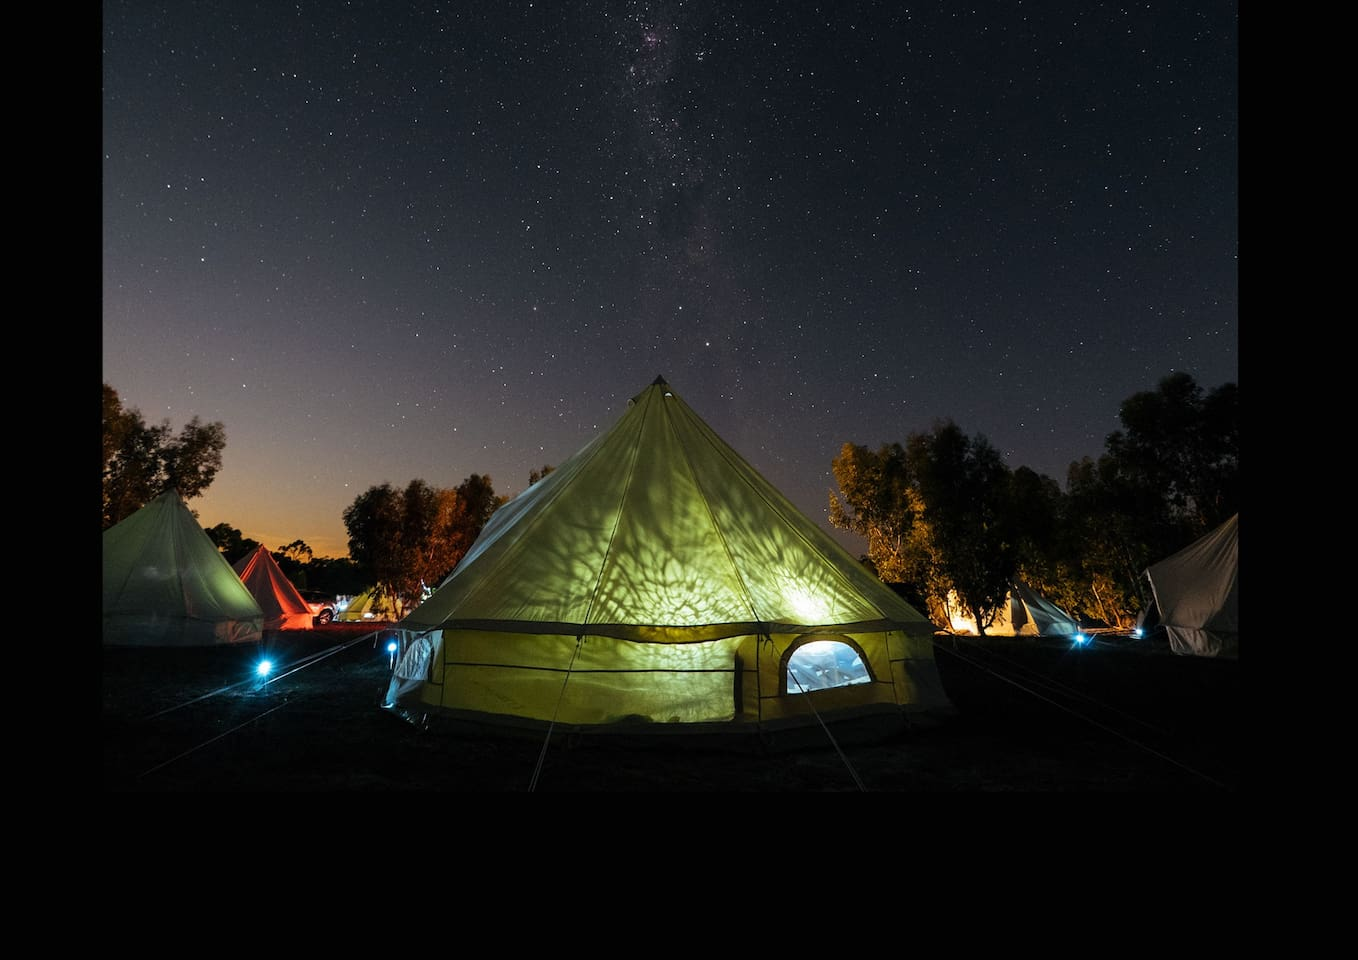 The Bell Tent at night, Glamping!